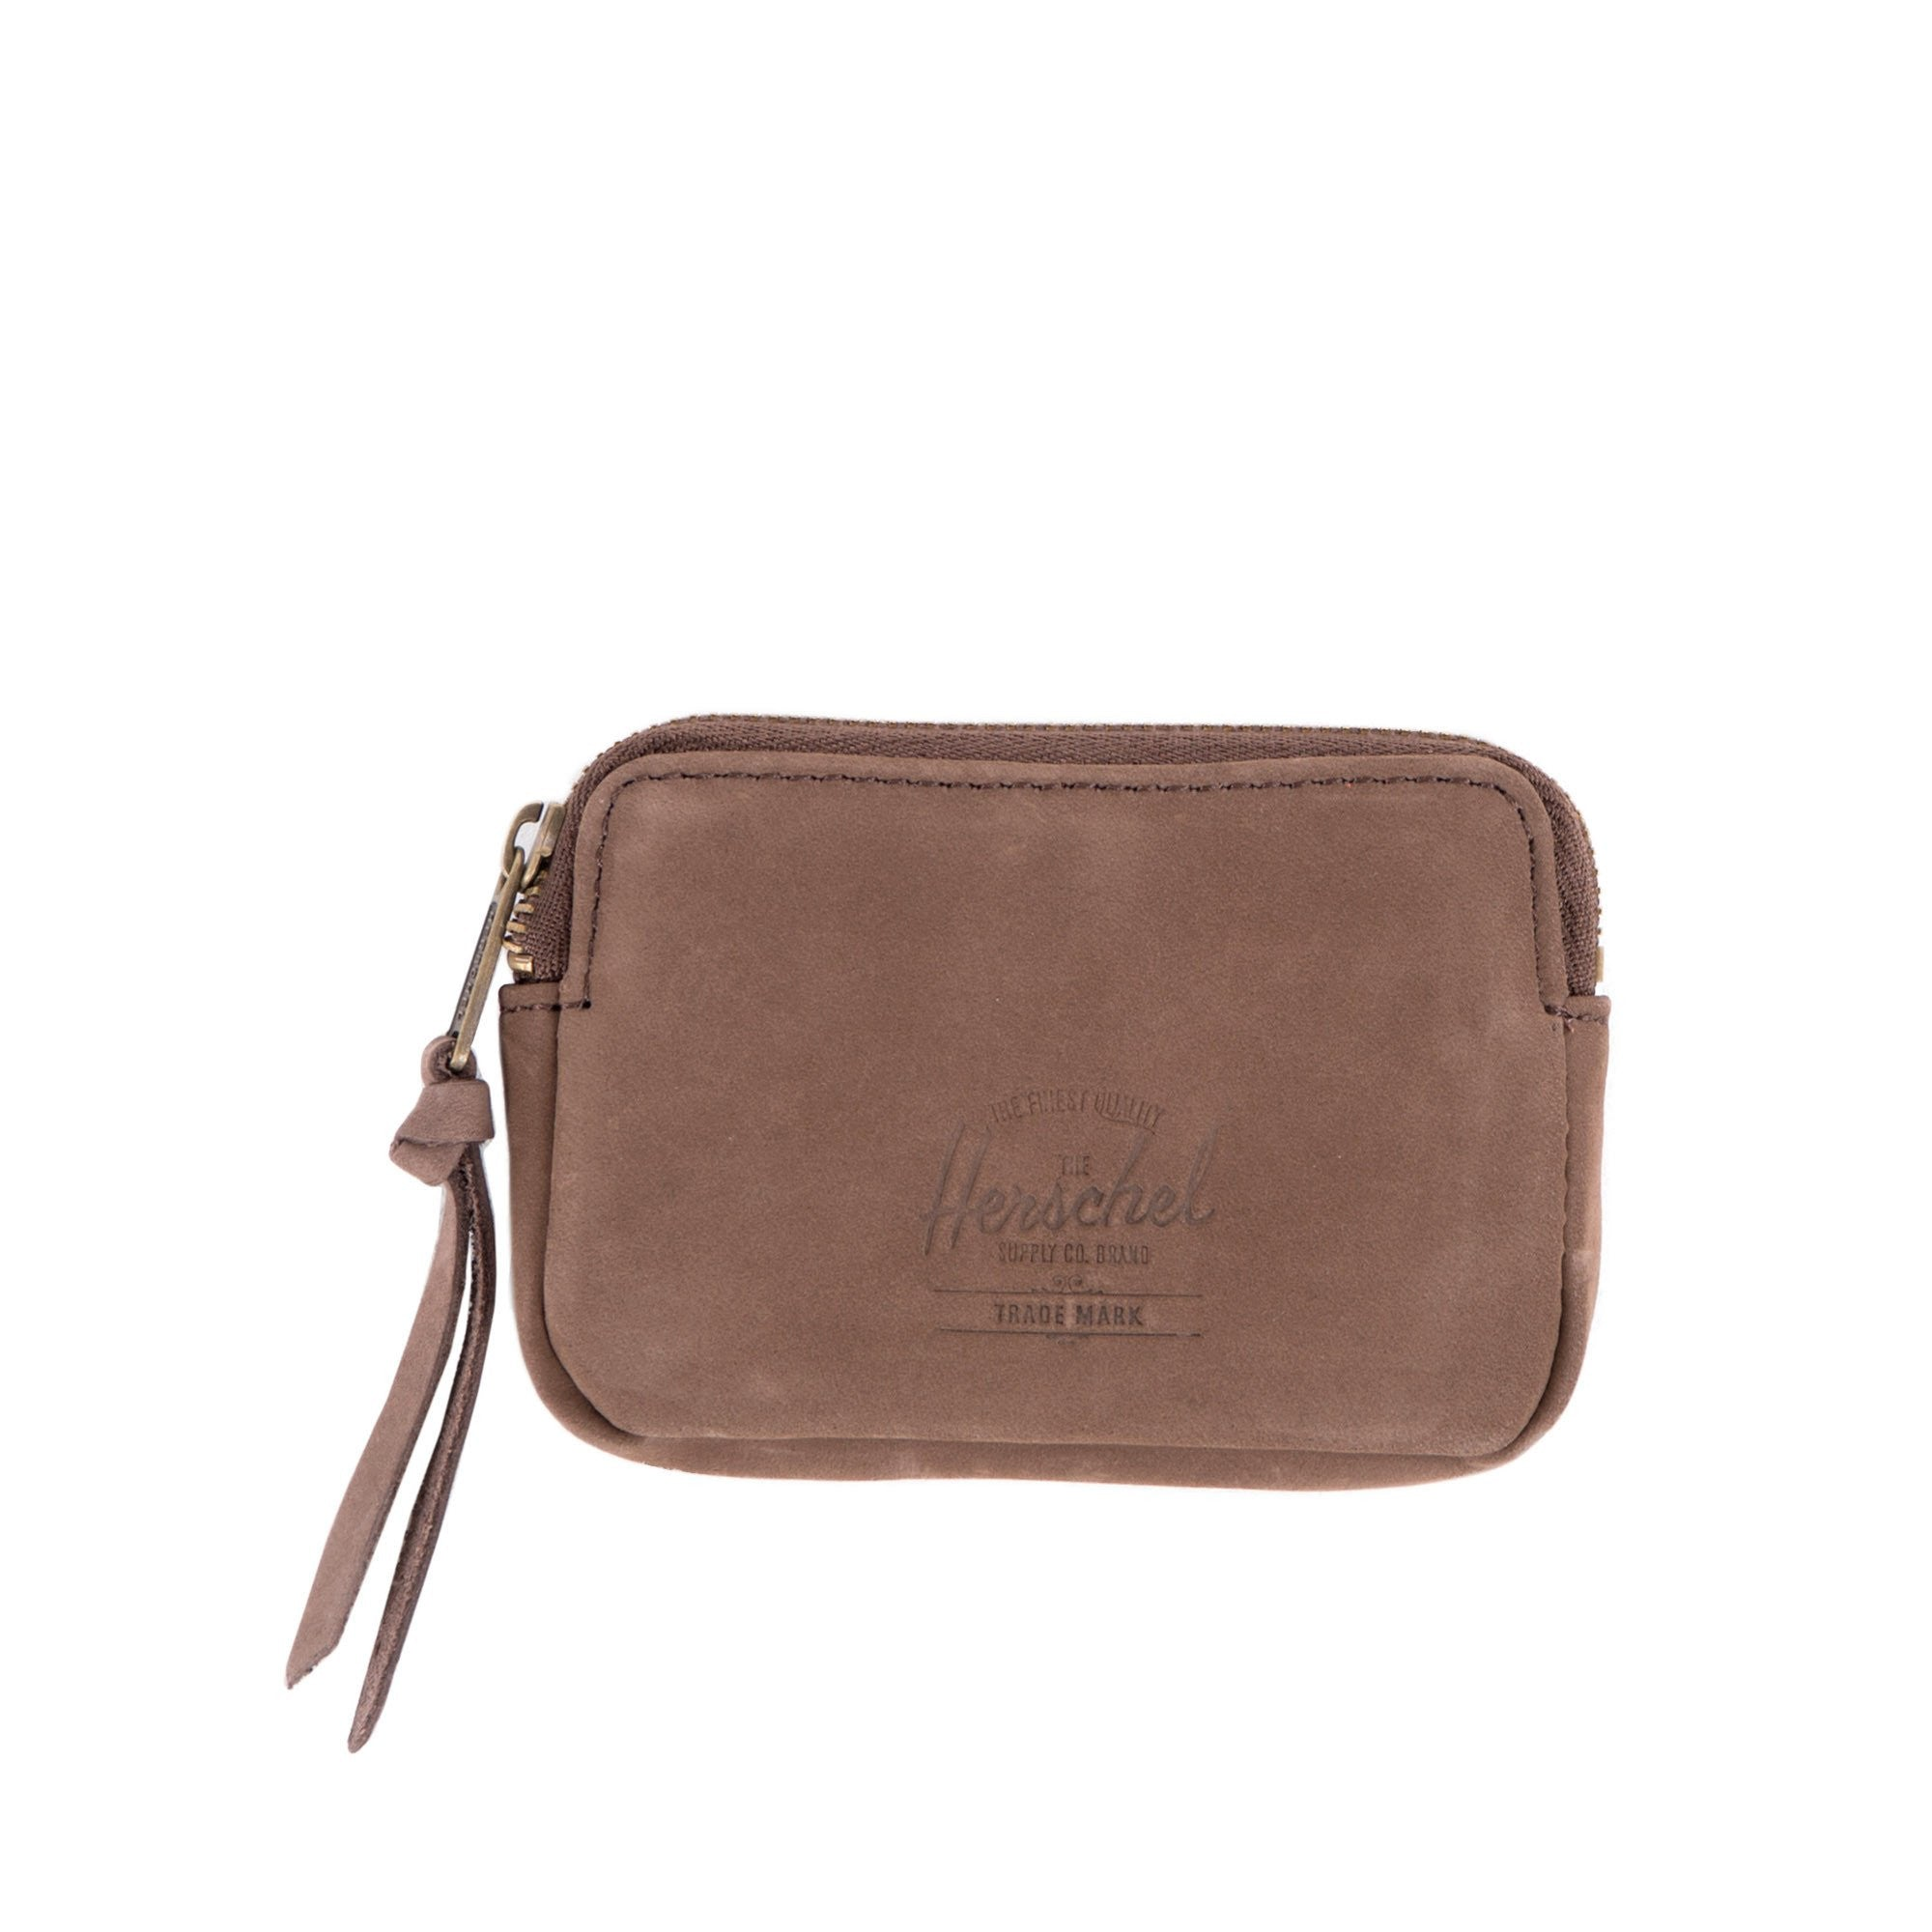 Herschel Oxford Wallet Leather Nubuck